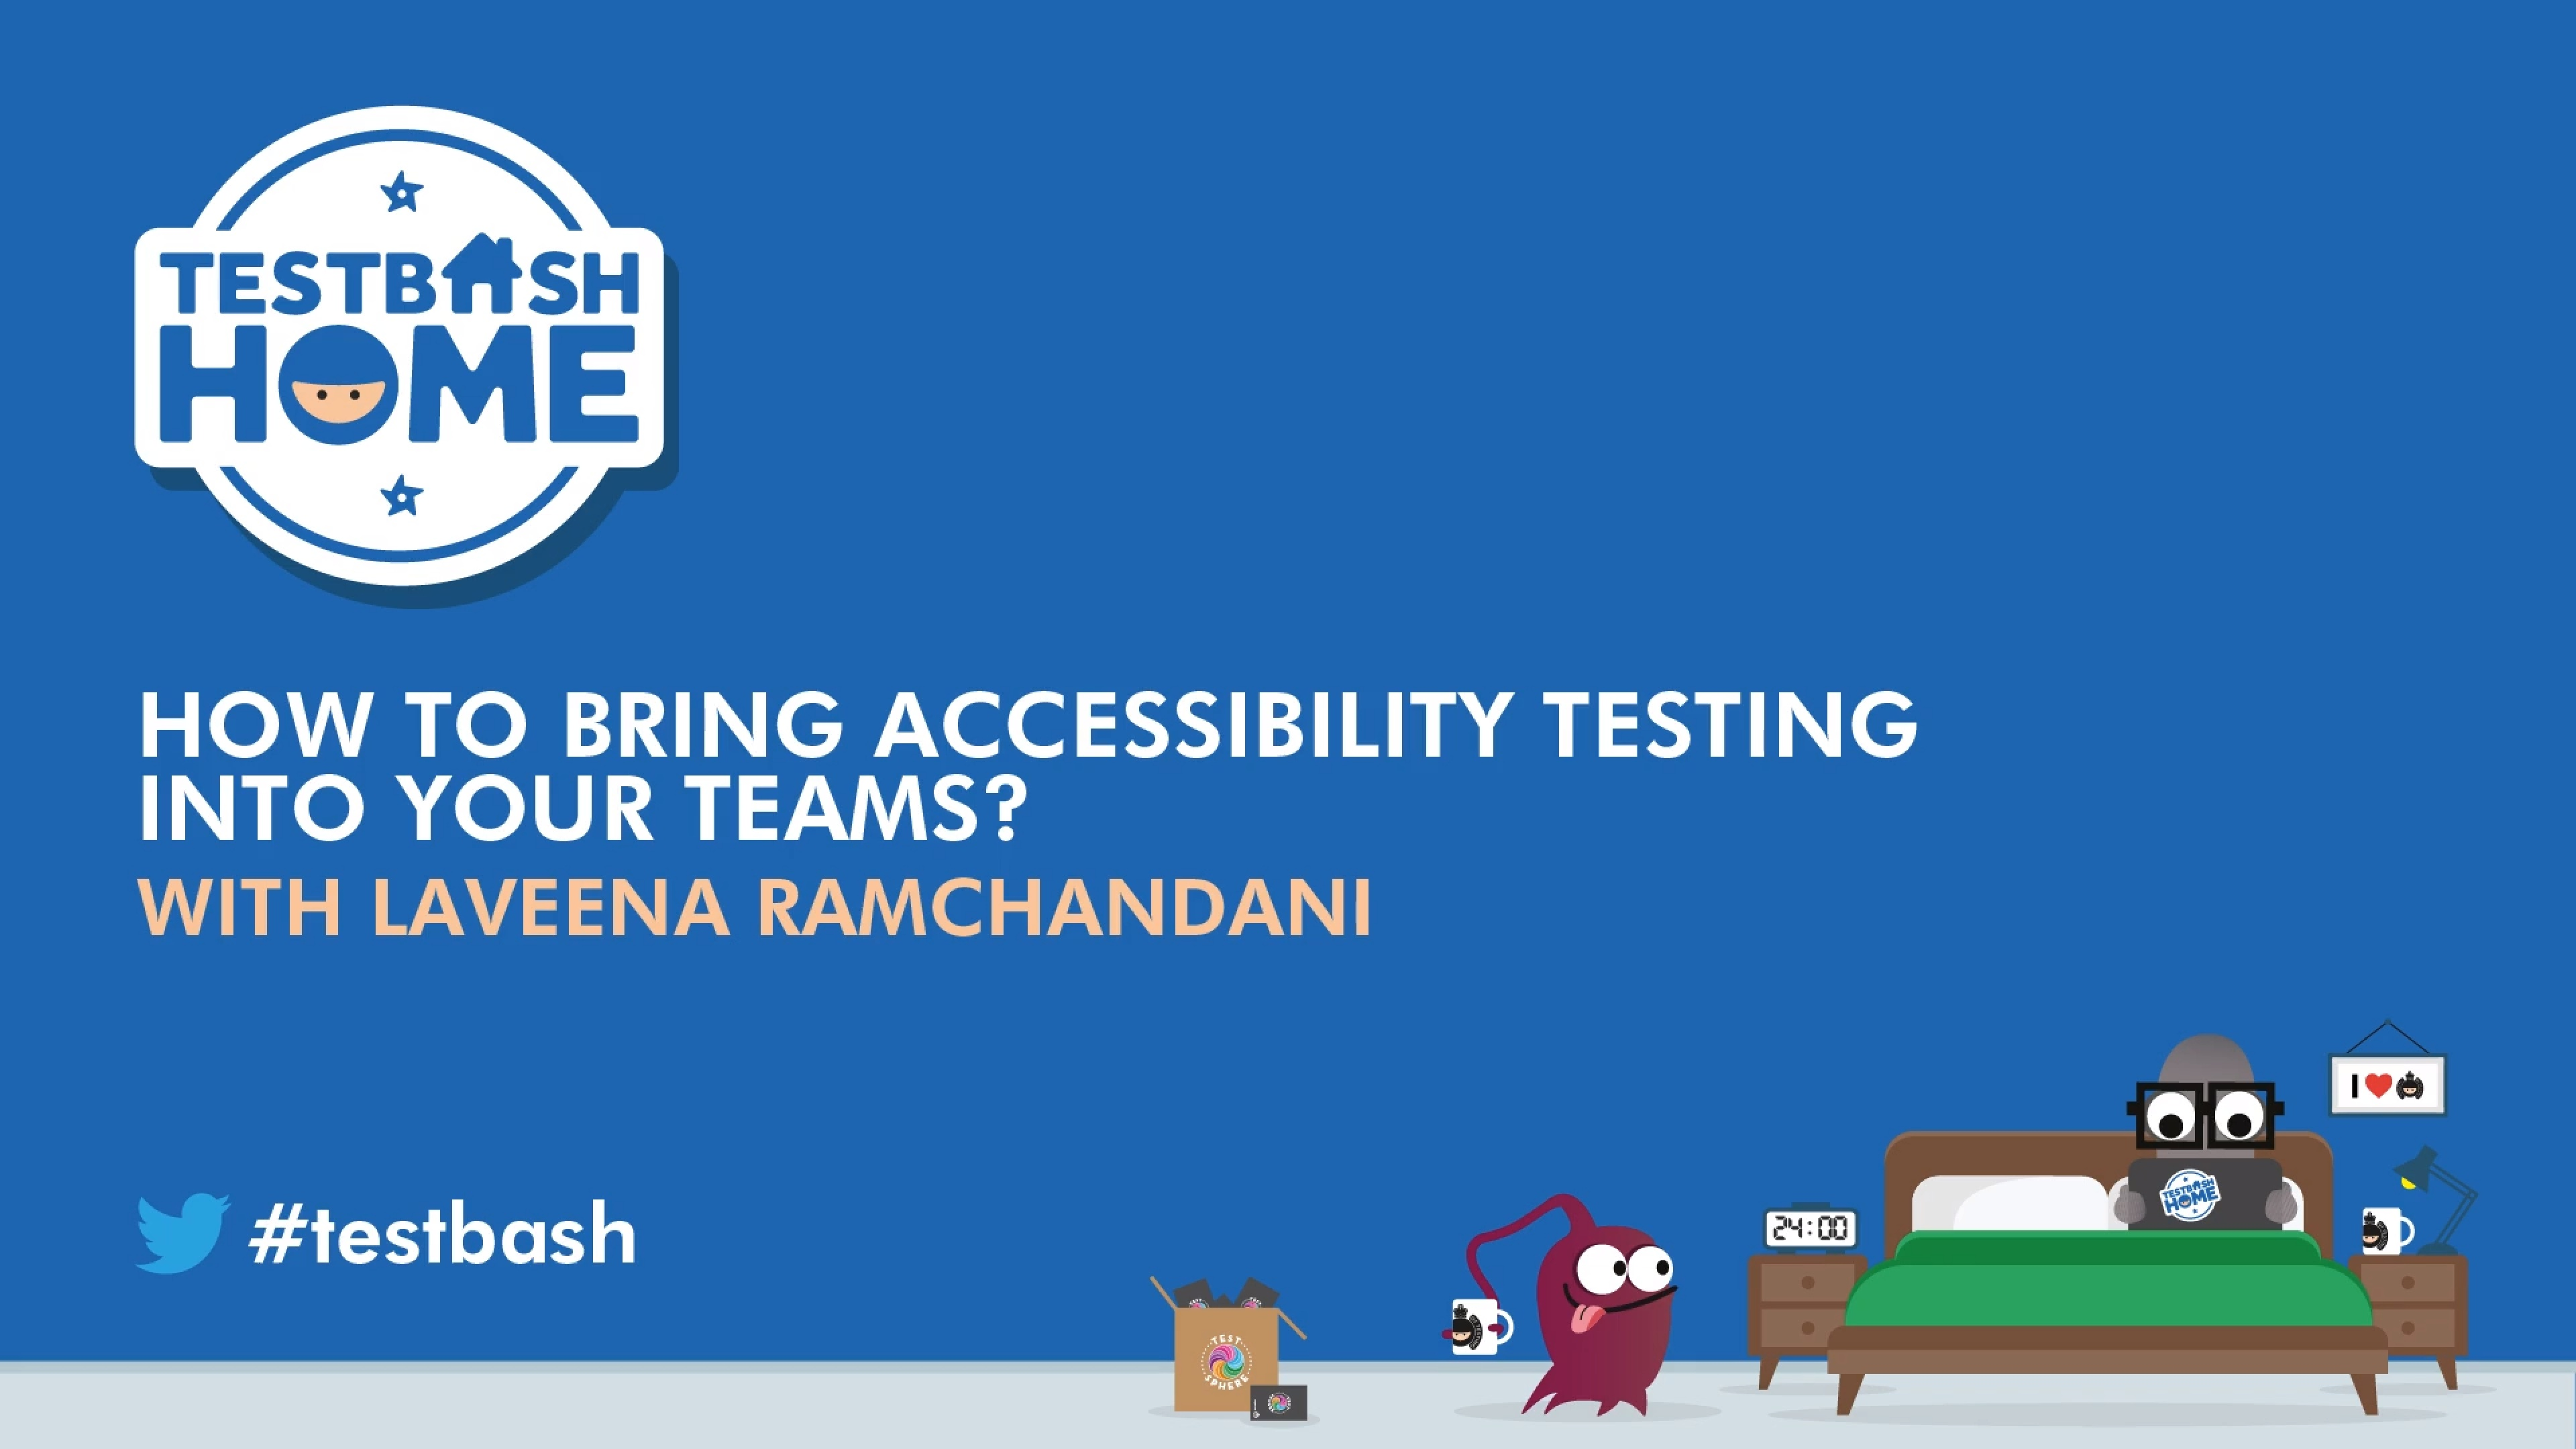 How to Bring Accessibility Testing into Your Teams?